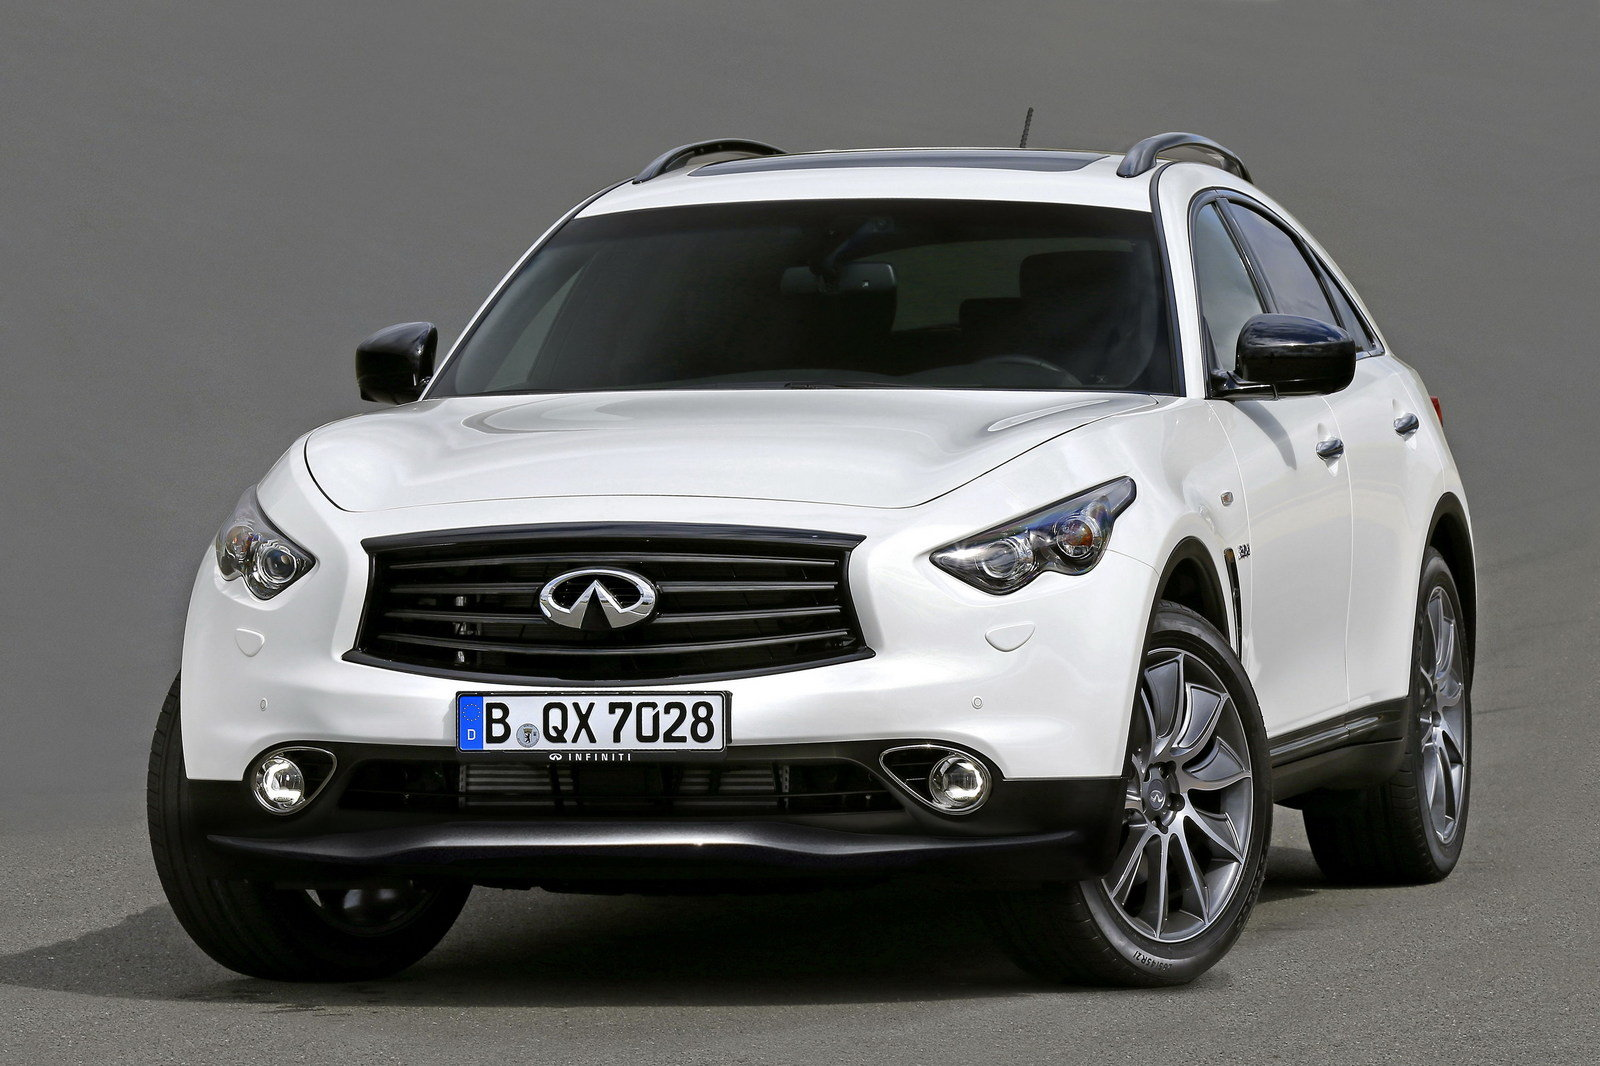 2016 infiniti qx70 ultimate picture 645593 car review. Black Bedroom Furniture Sets. Home Design Ideas